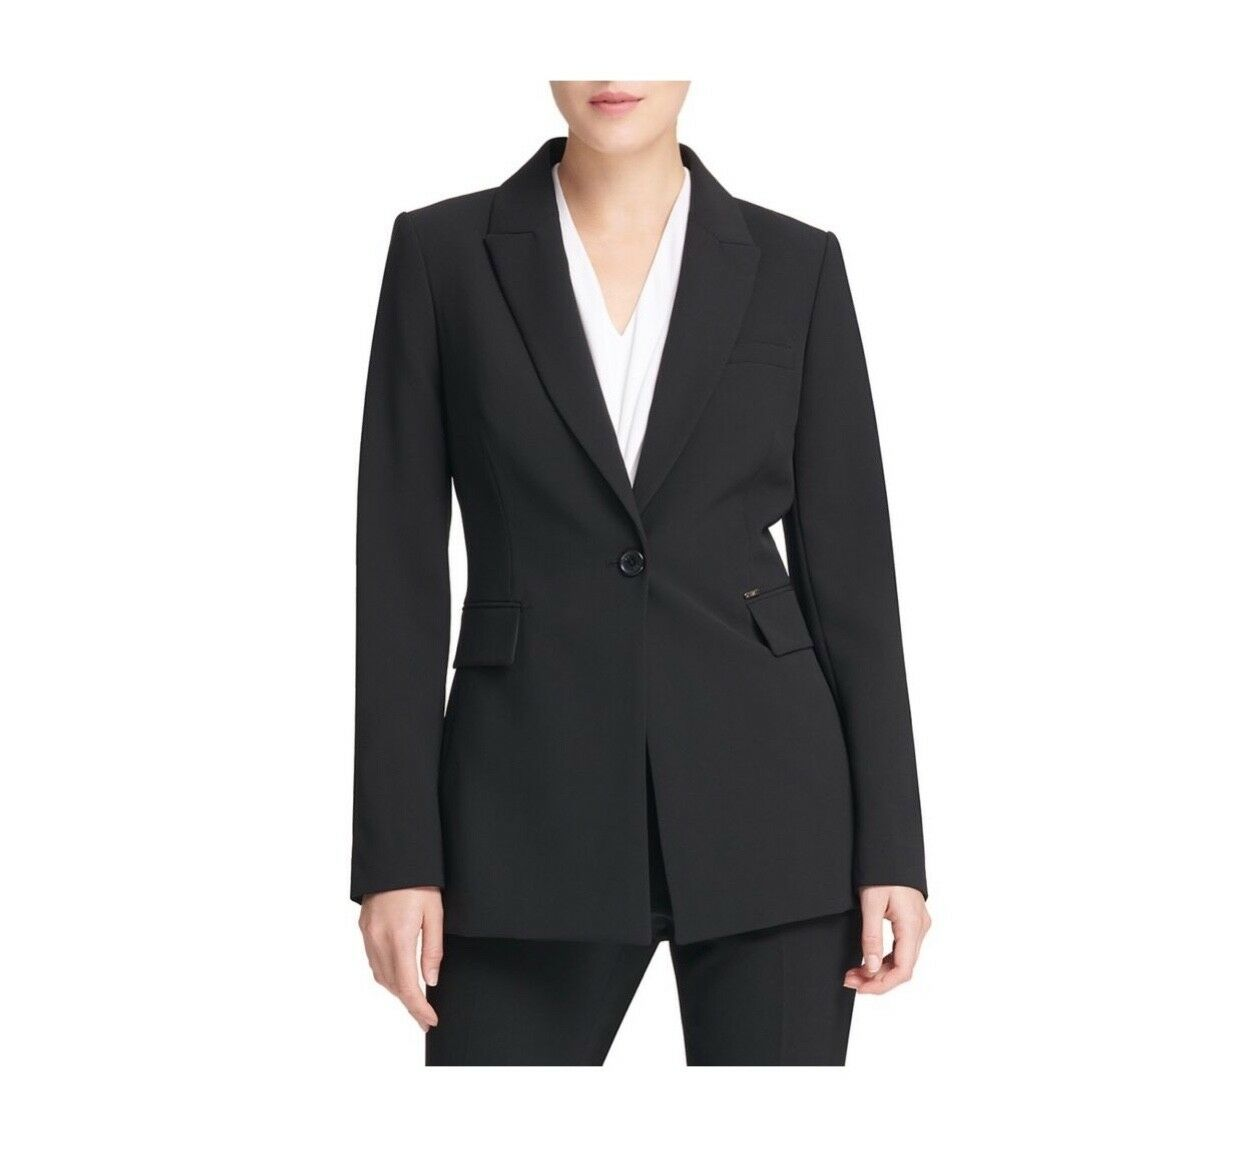 New With Tags   Everyday Classy tailored women karan single-button blazer Size 6